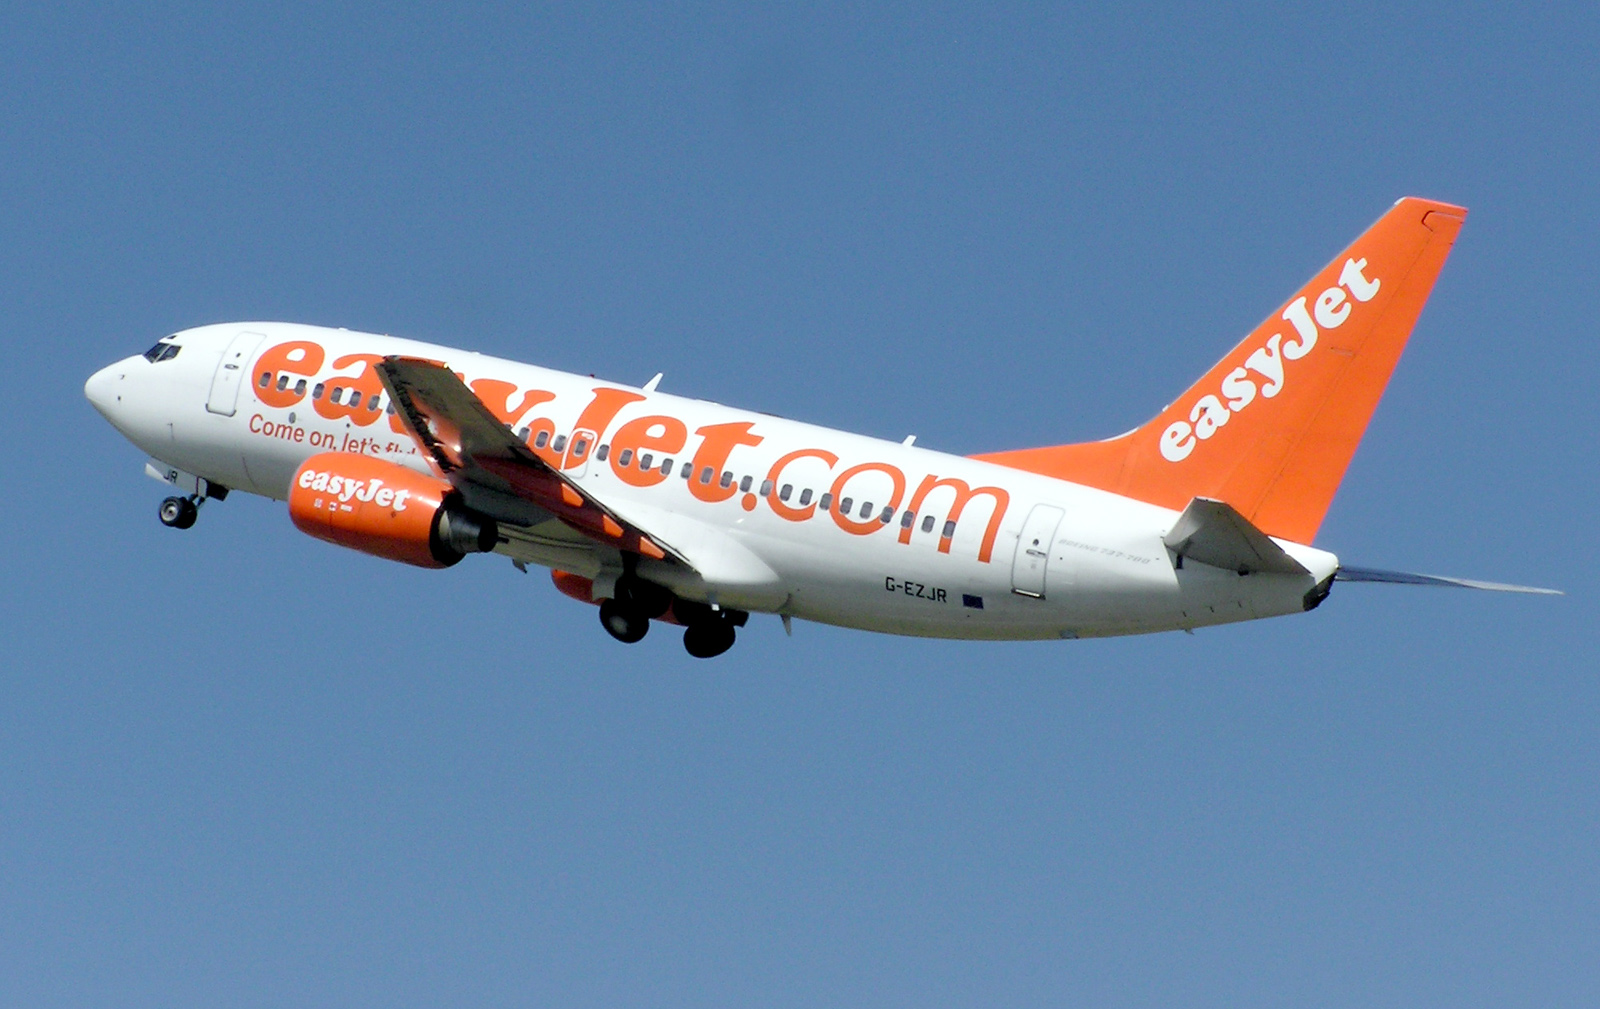 an easyjet plan similar to the one where the man was tasered